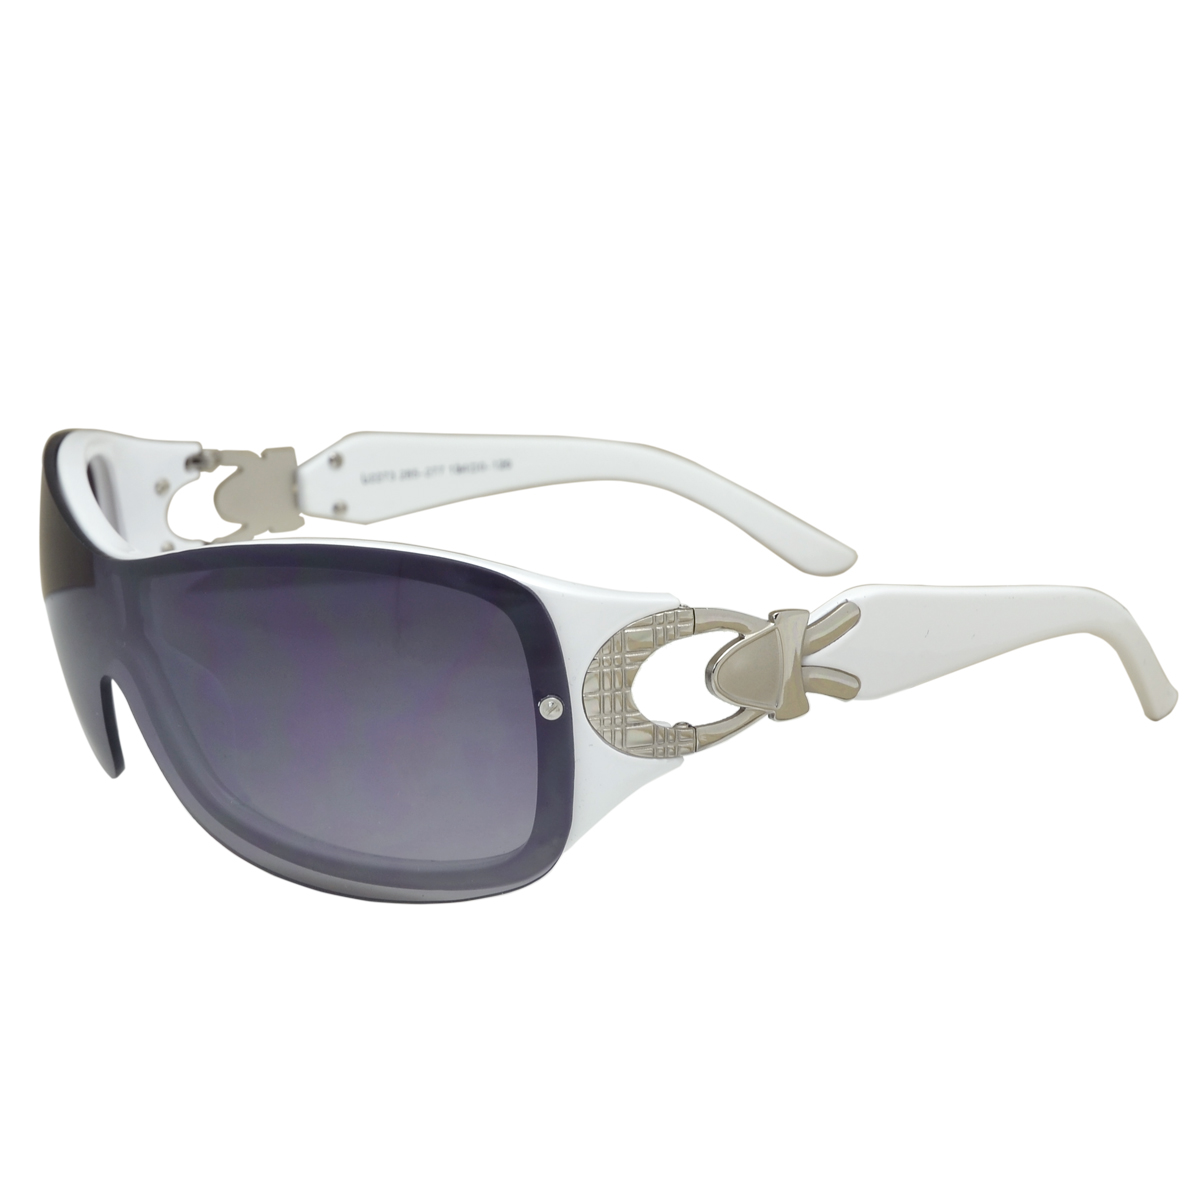 Trendy Kaidi Sunglasses with Matching case